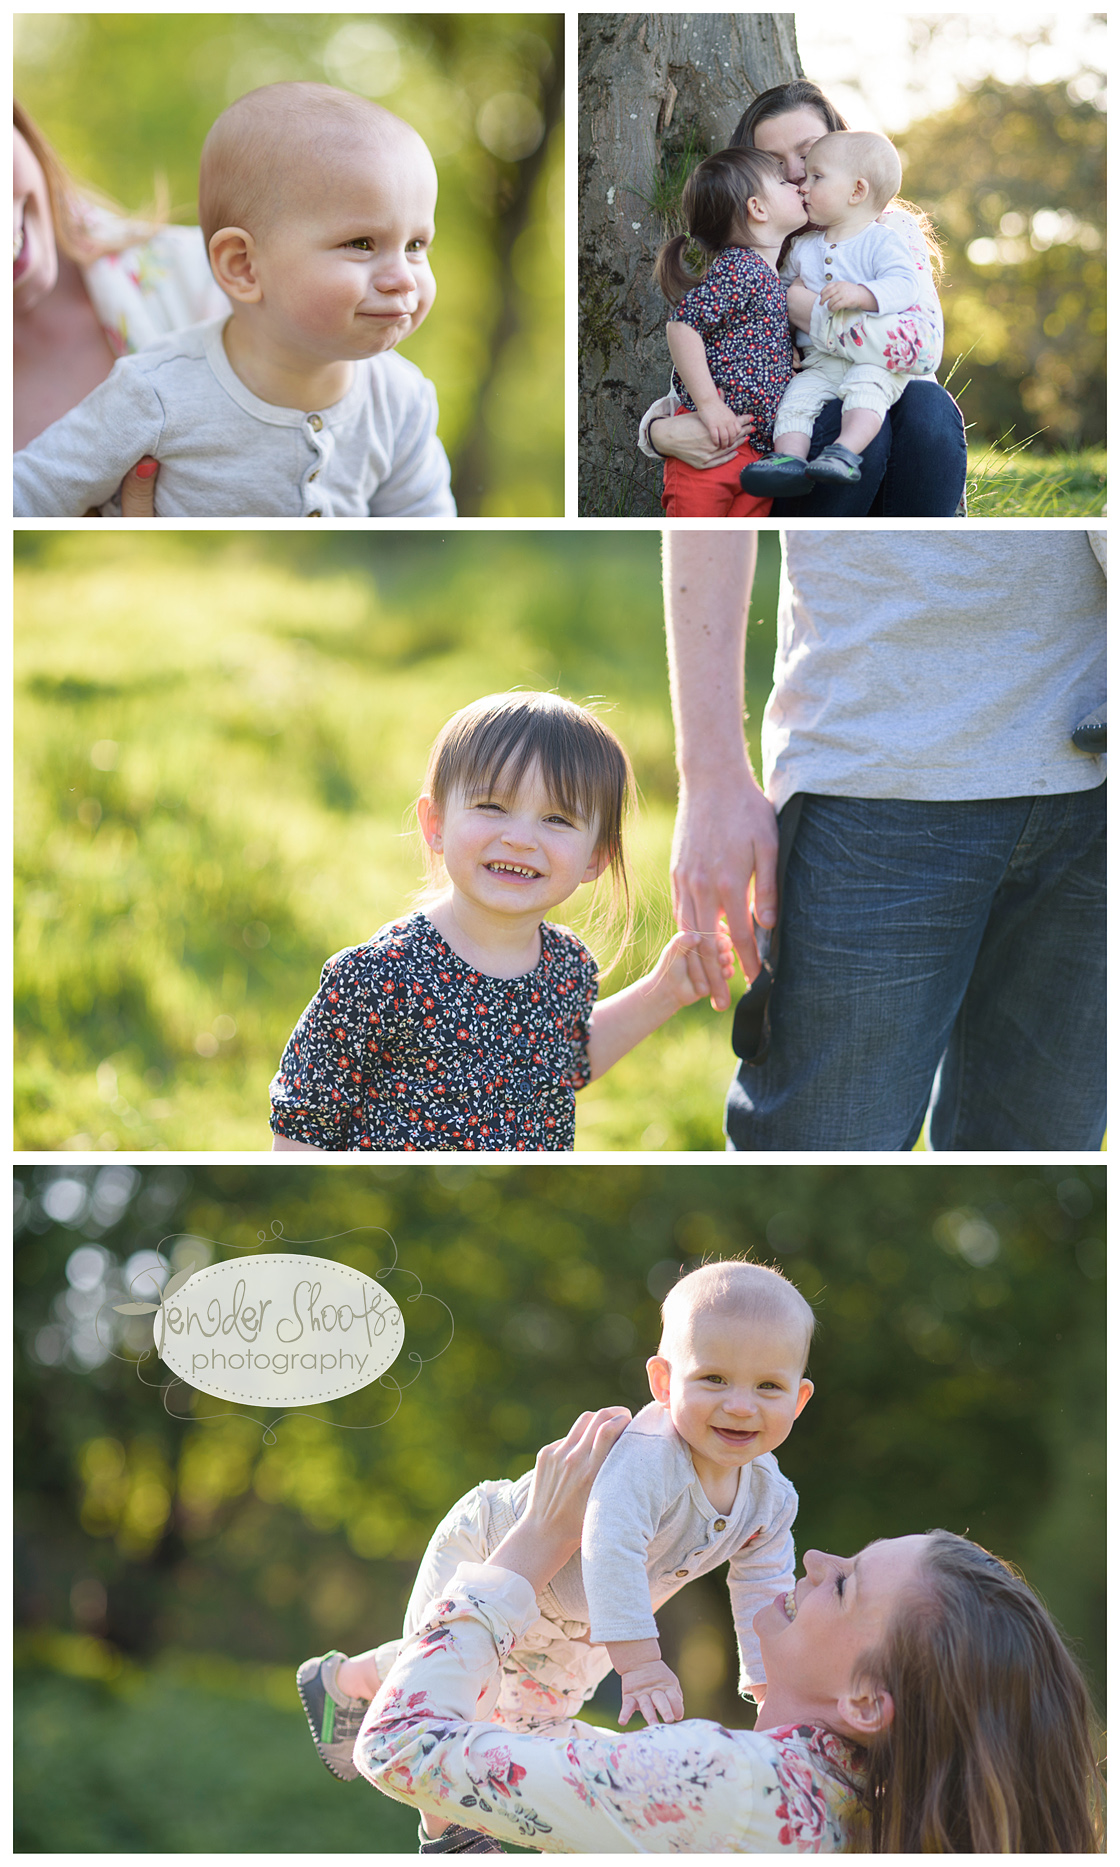 Tender Shoots Family Photography